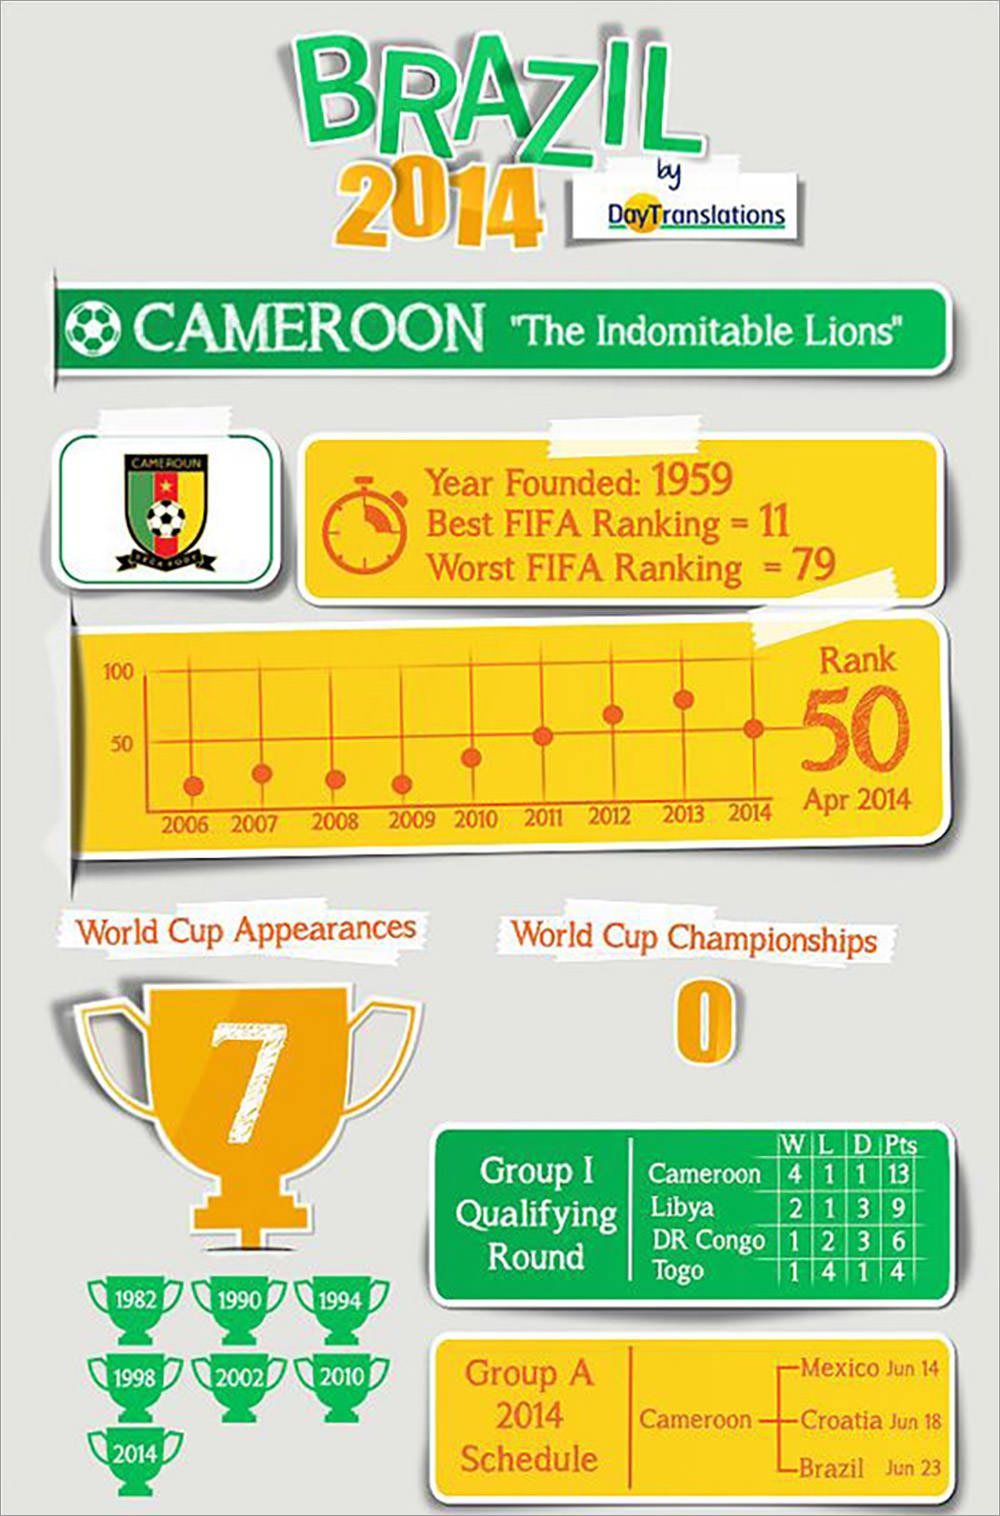 Cameroon - The Indomitable Lions